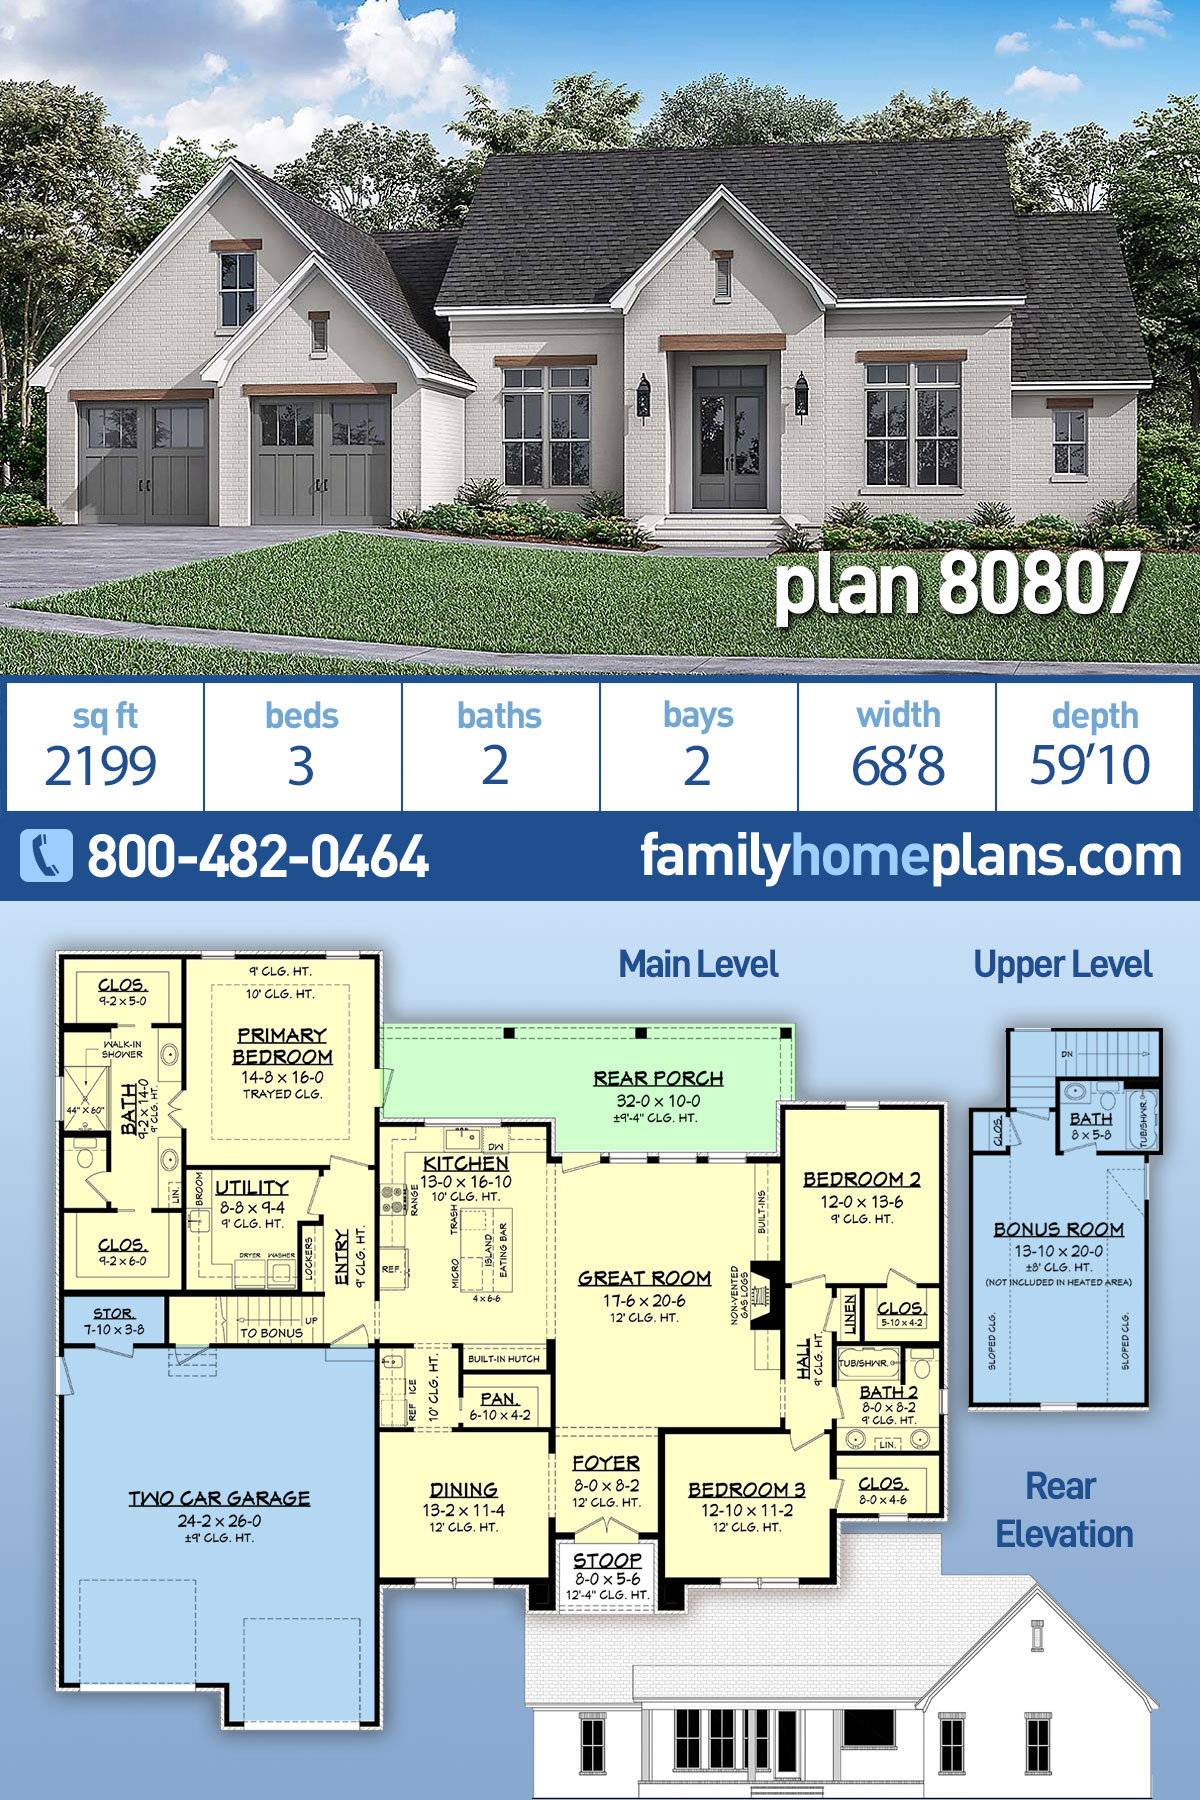 Farmhouse, French Country House Plan 80807 with 3 Beds, 2 Baths, 2 Car Garage